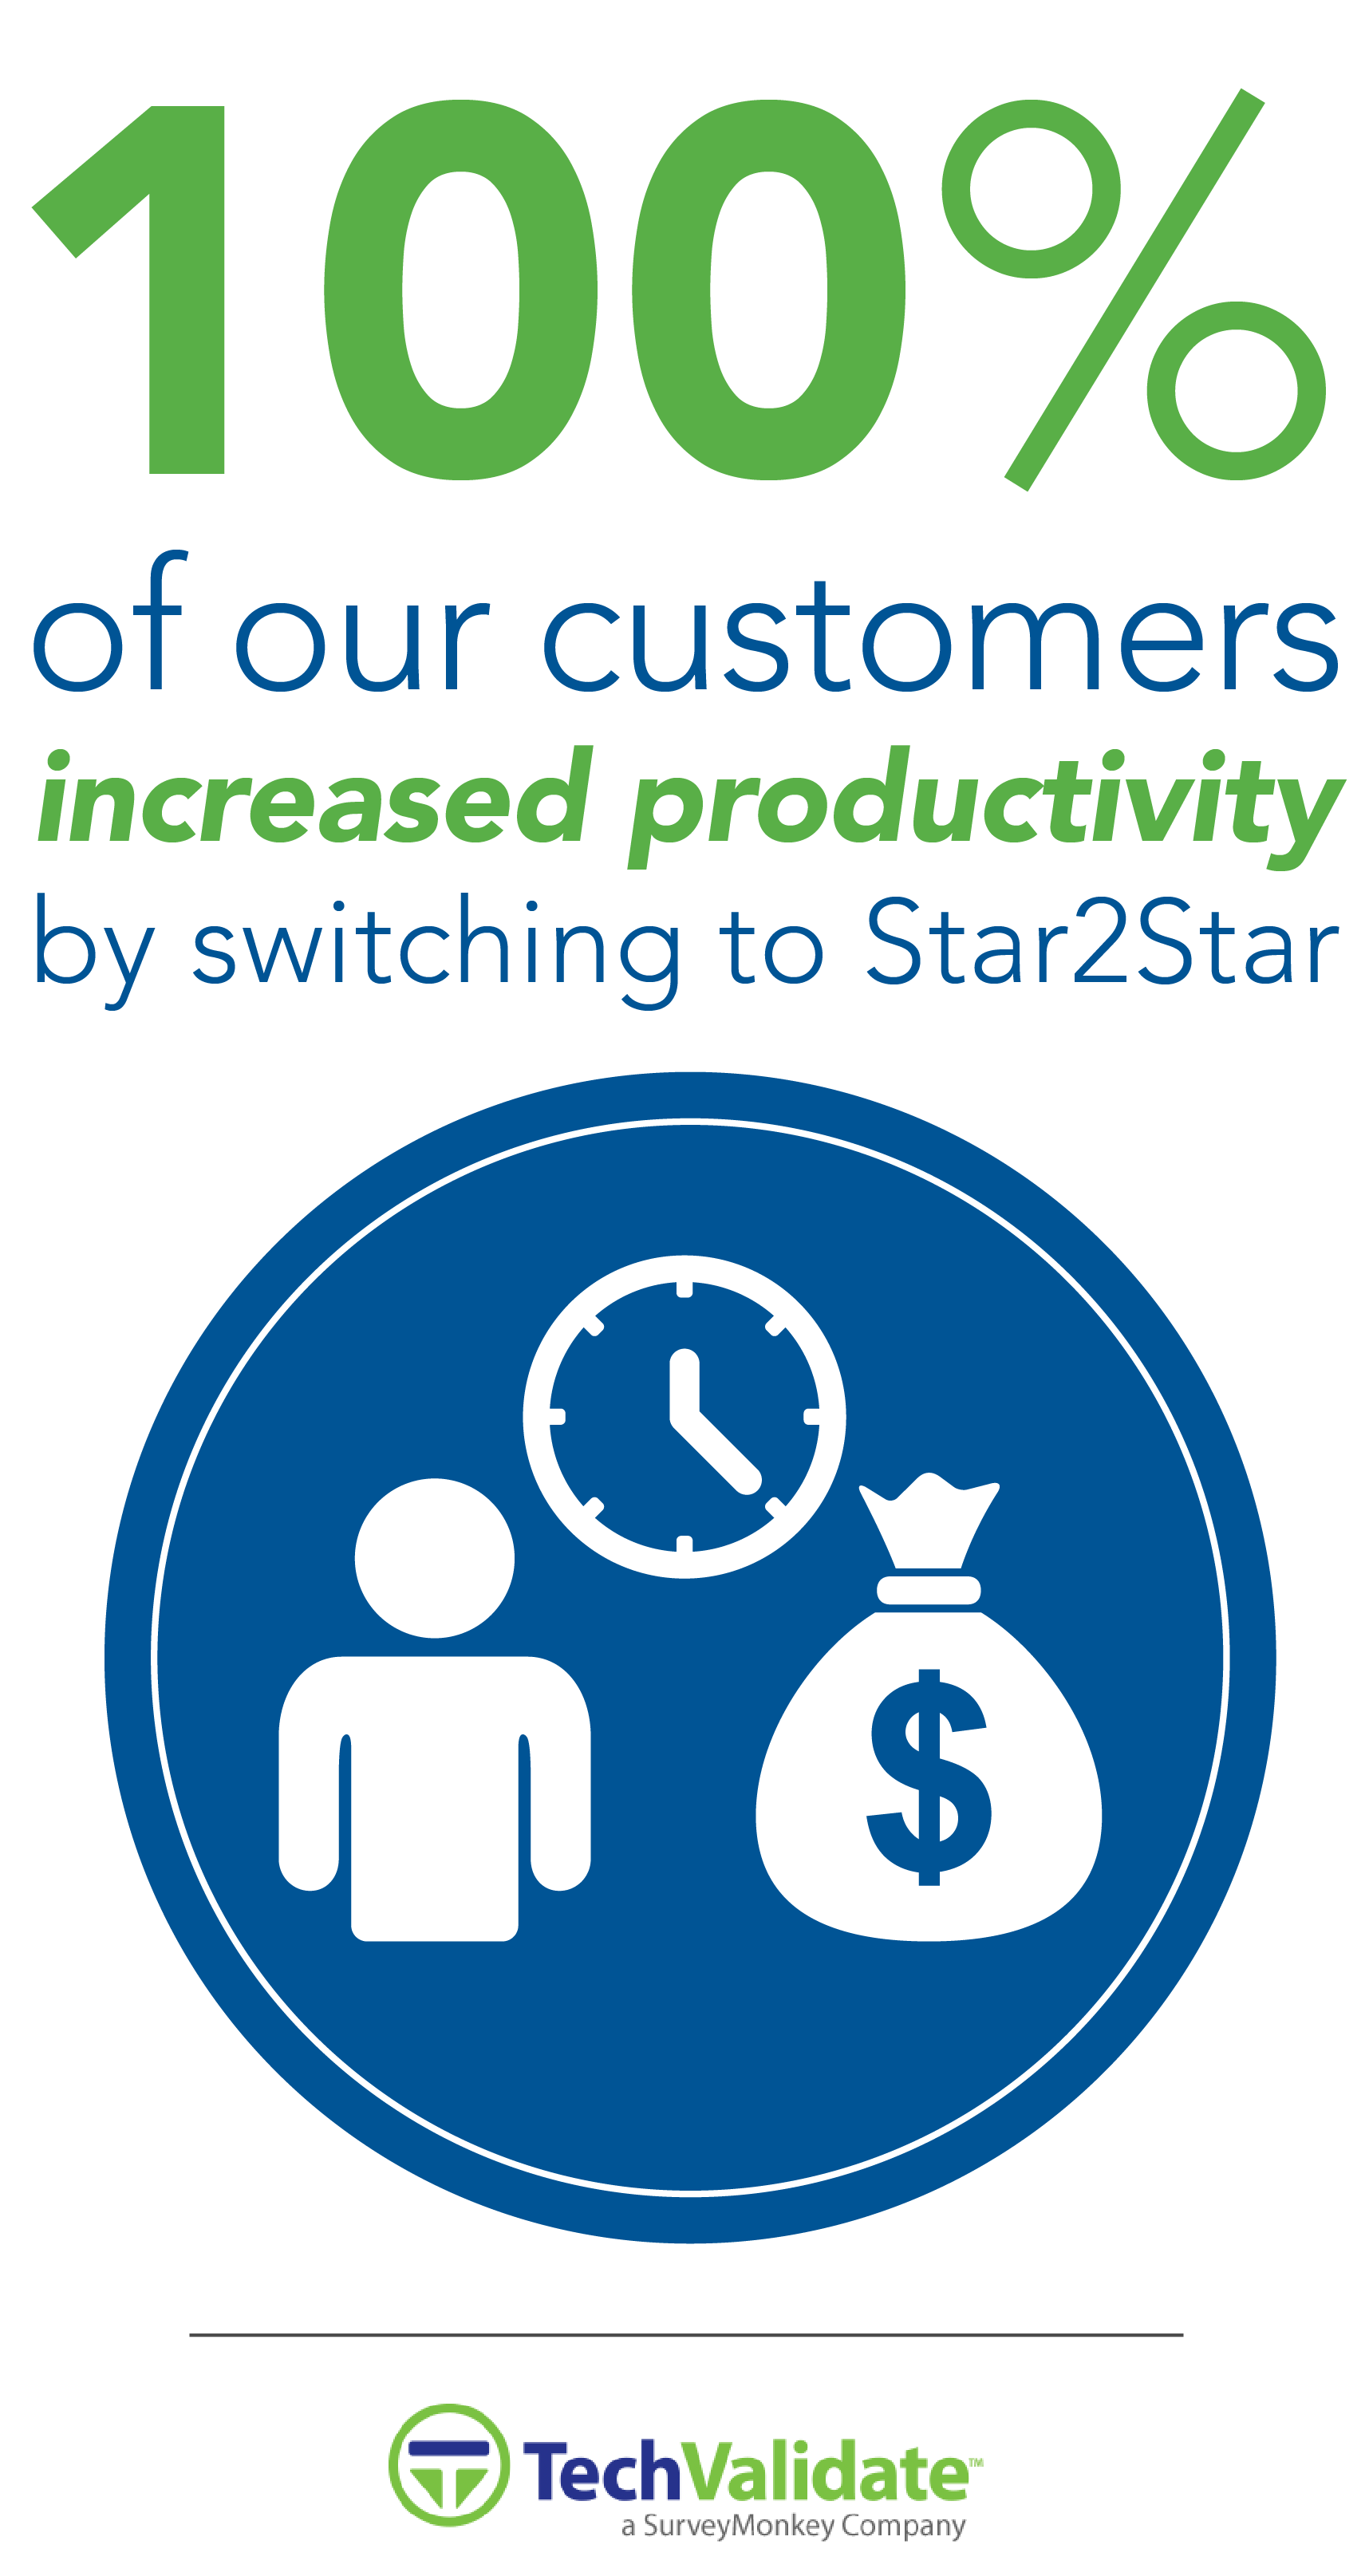 100% of Surveyed Customers Increased Productivity